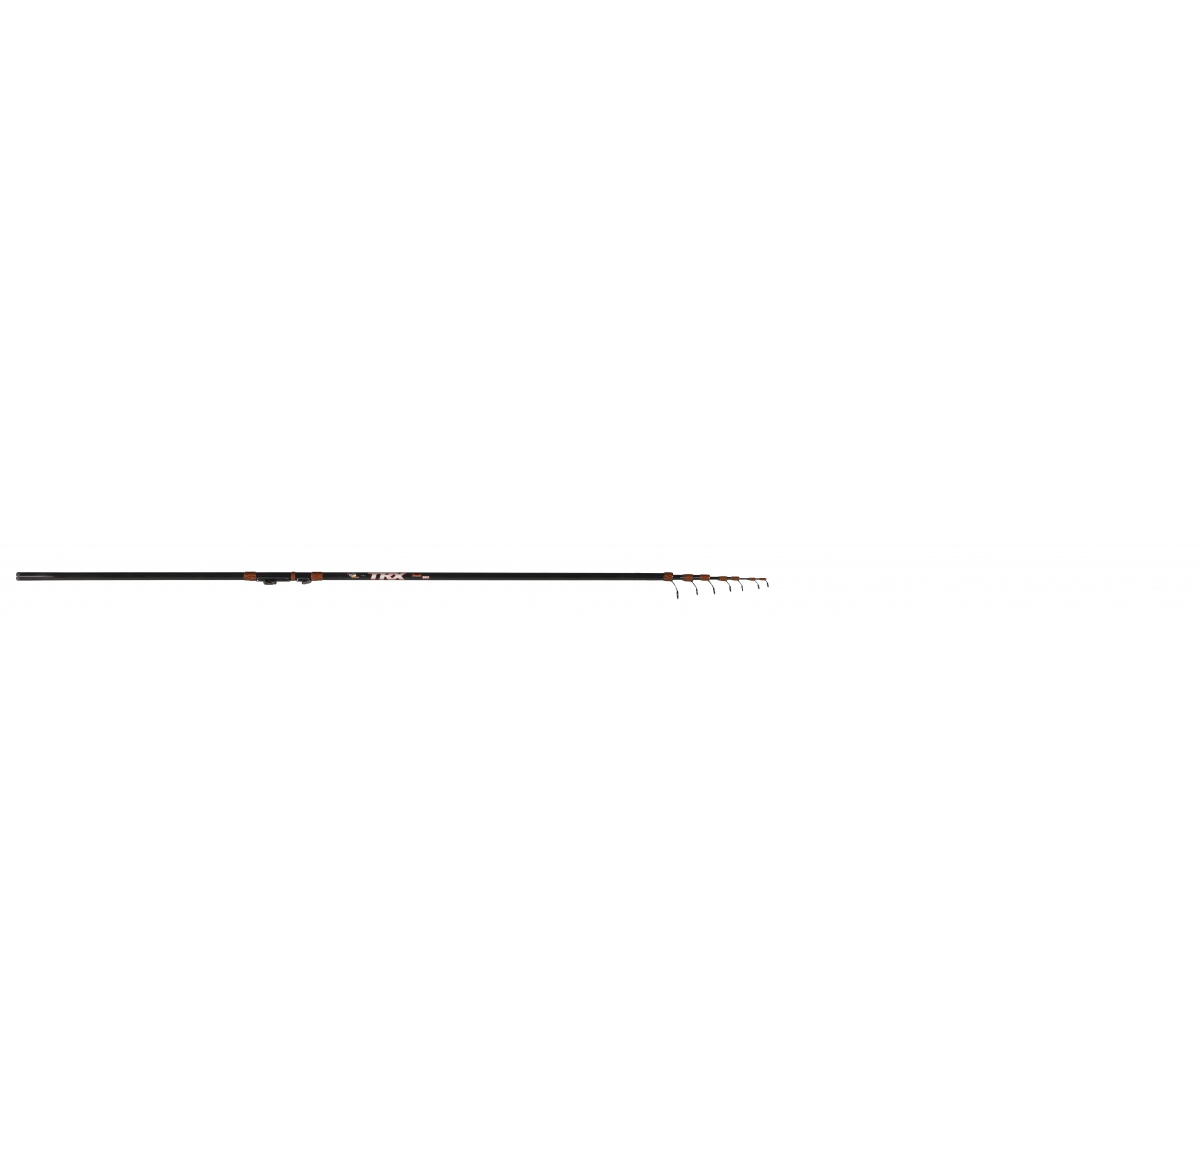 Iron Trout TRX Tremarella 420 cm 8-22 g